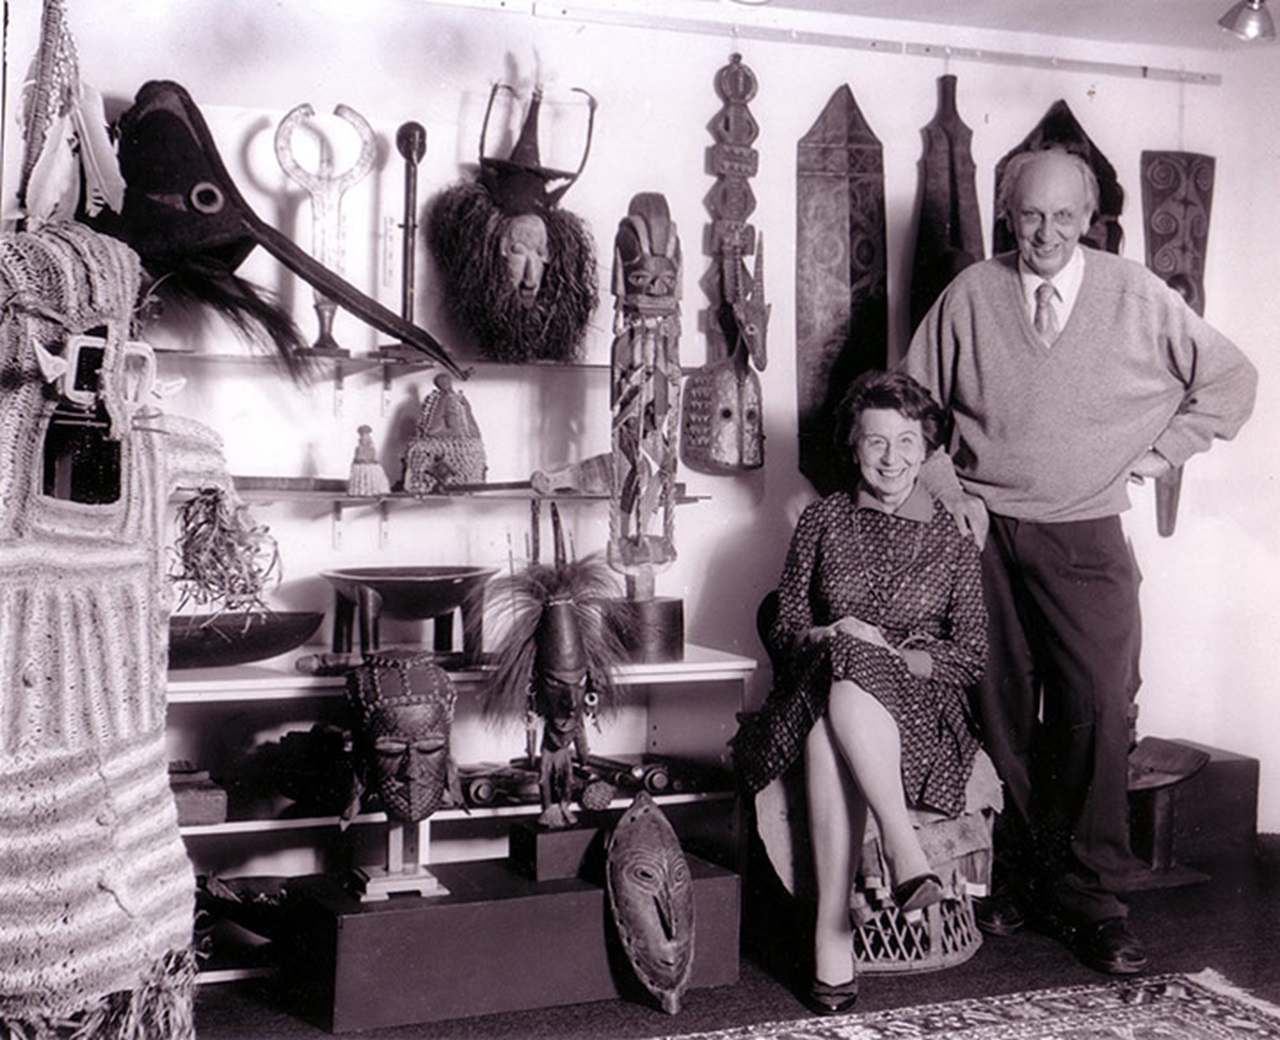 Therese Finette Lemaire and Matthias Lemaire, circa 1970s. Photo courtesy of Finette Lemaire.